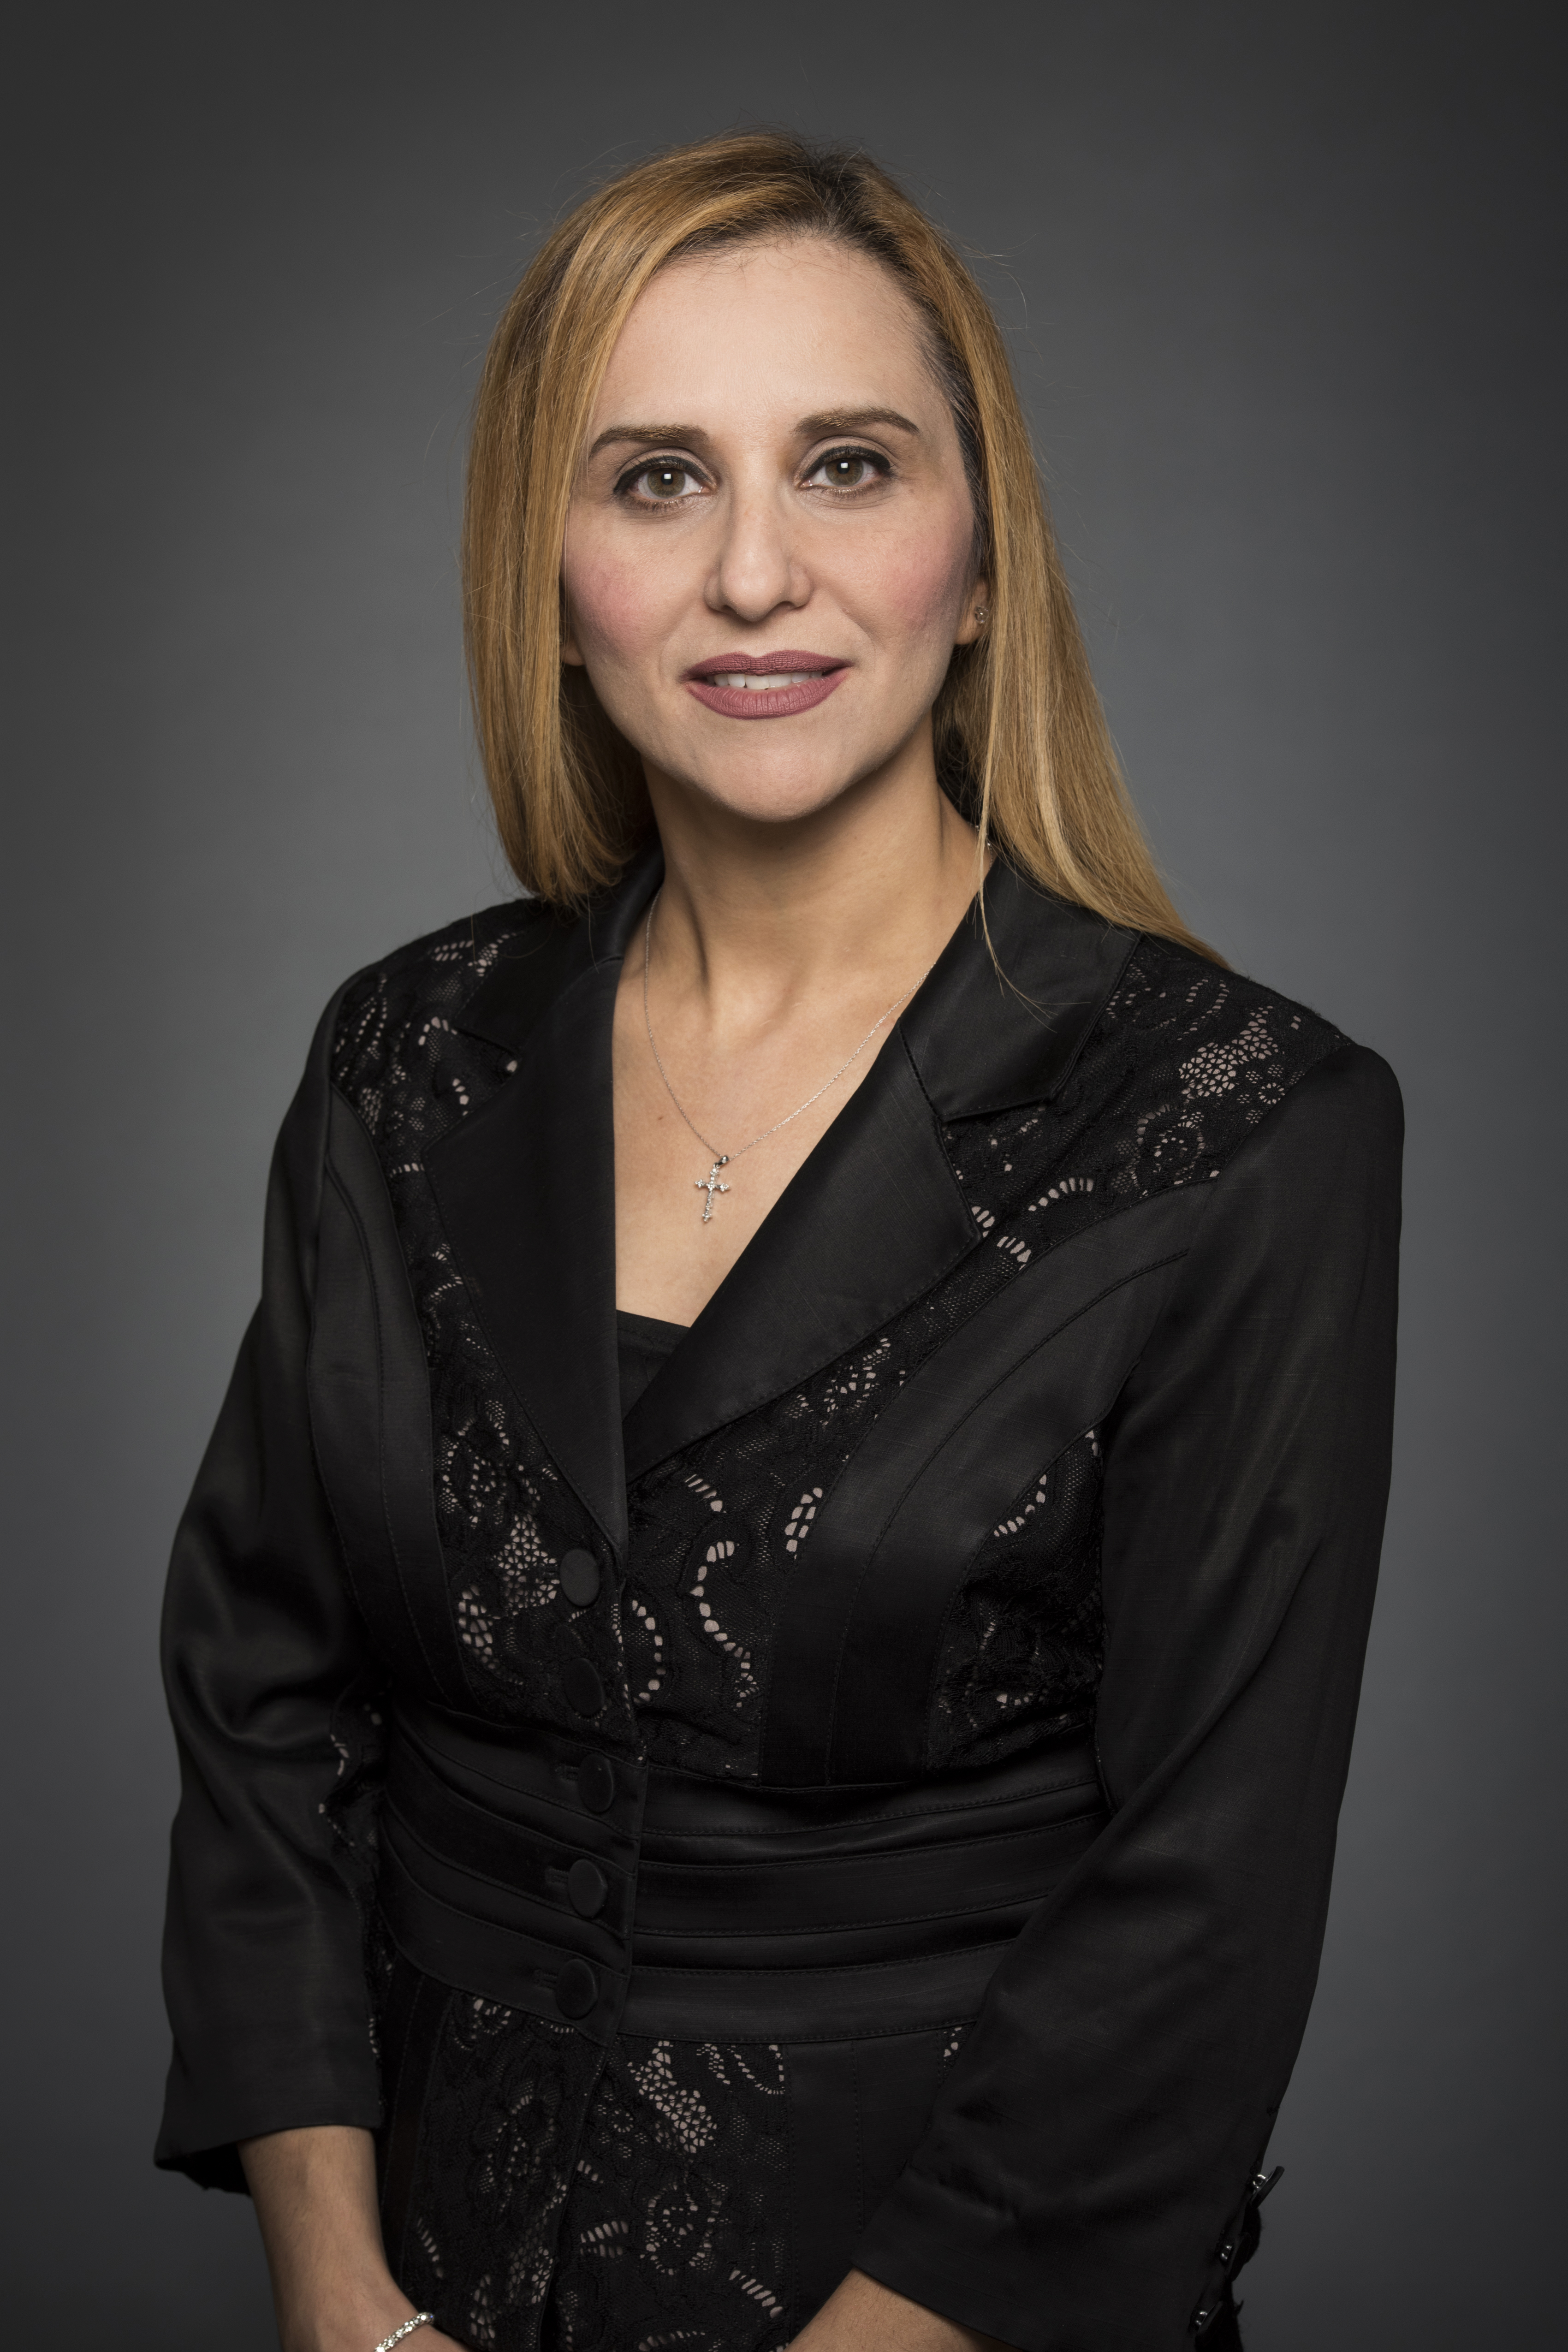 Picture of Kay-Anne Haykal